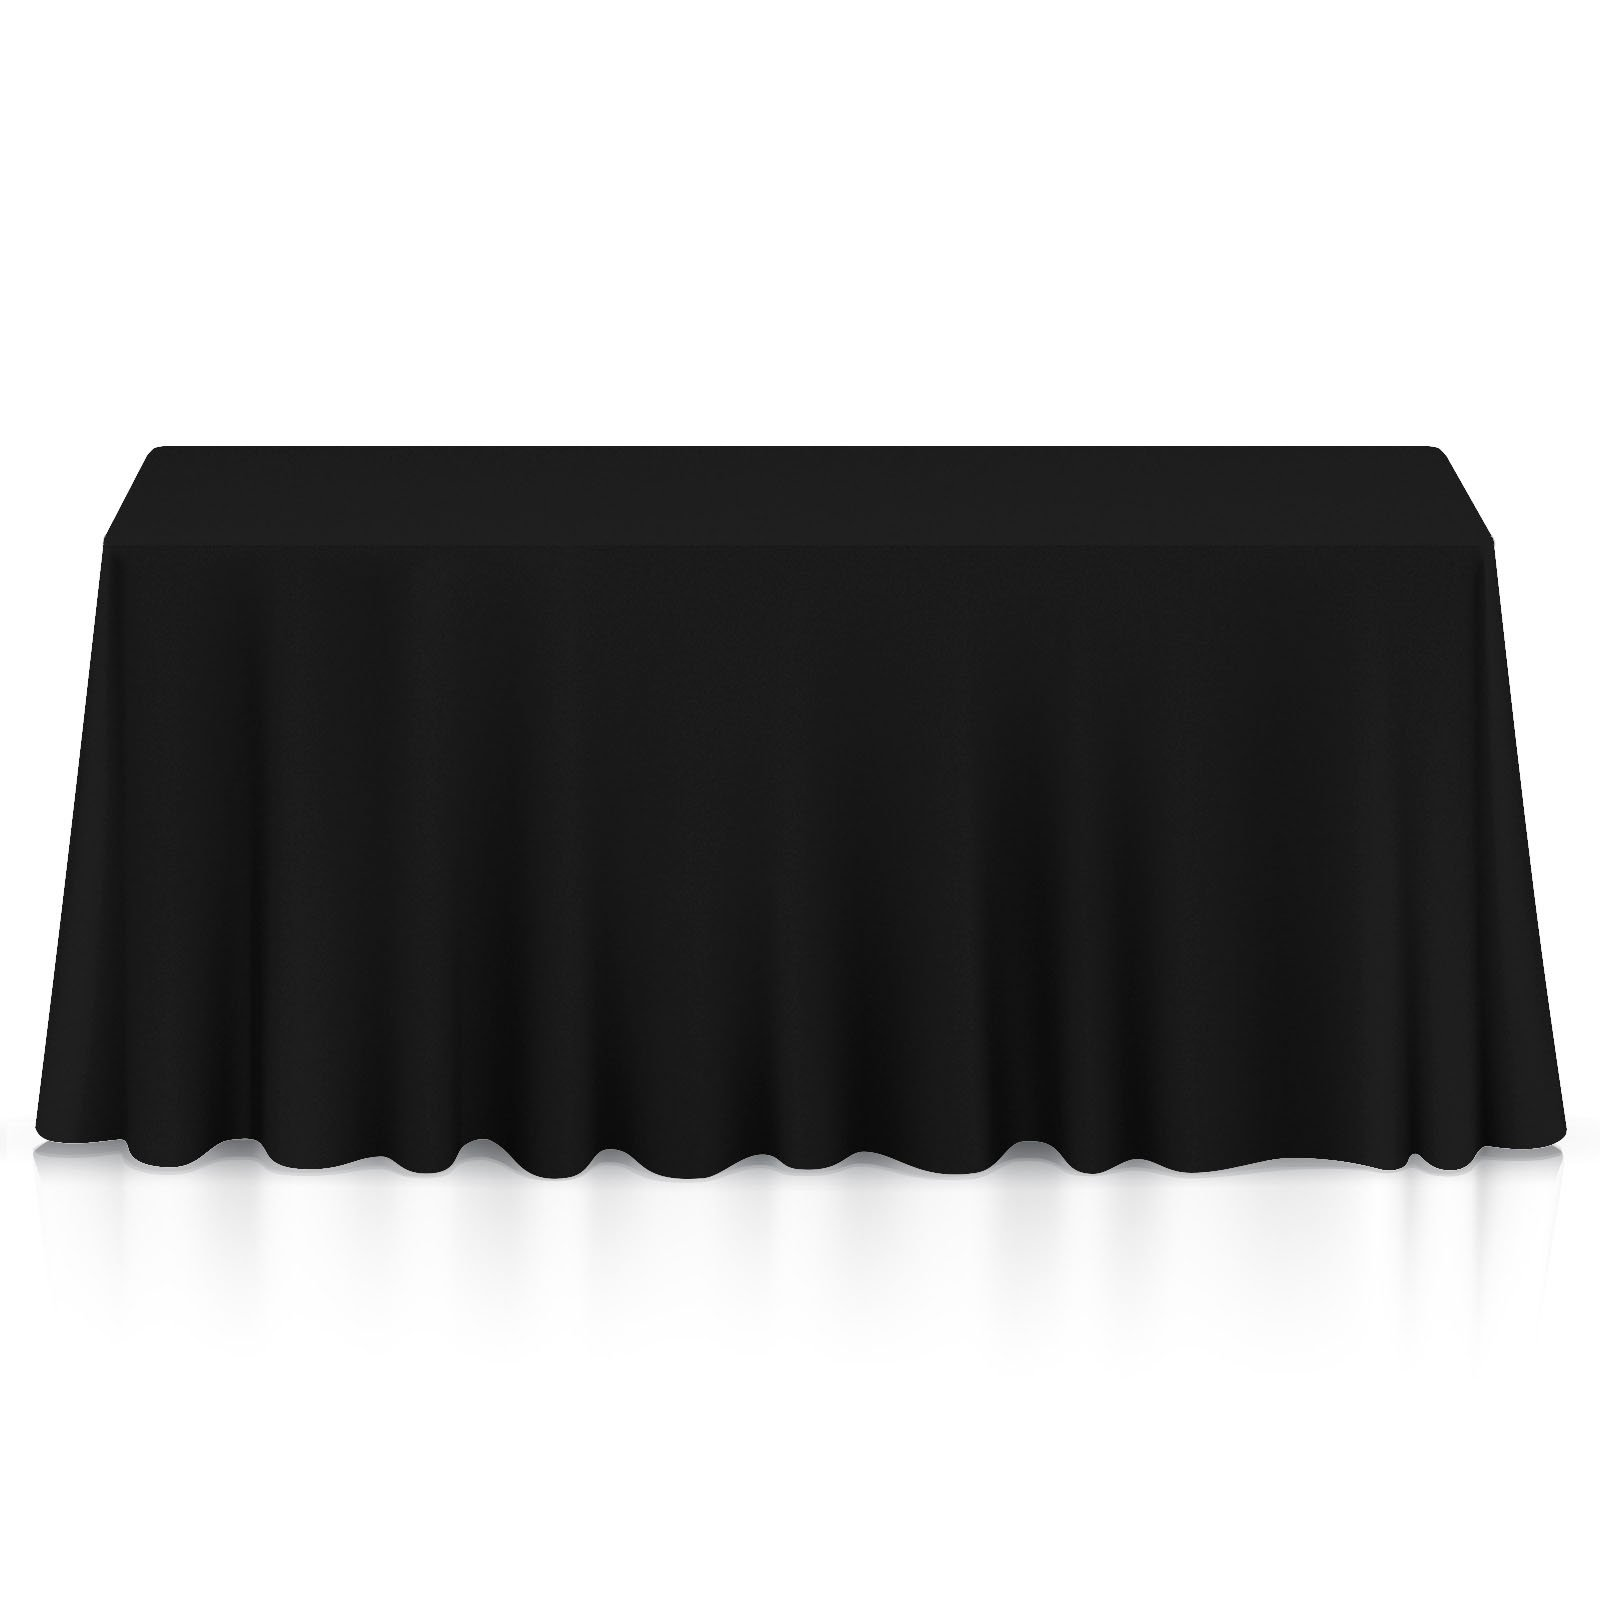 Lann's Linens - 10 Premium 60'' x 102'' Tablecloths for Wedding/Banquet / Restaurant - Rectangular Polyester Fabric Table Cloths - Black